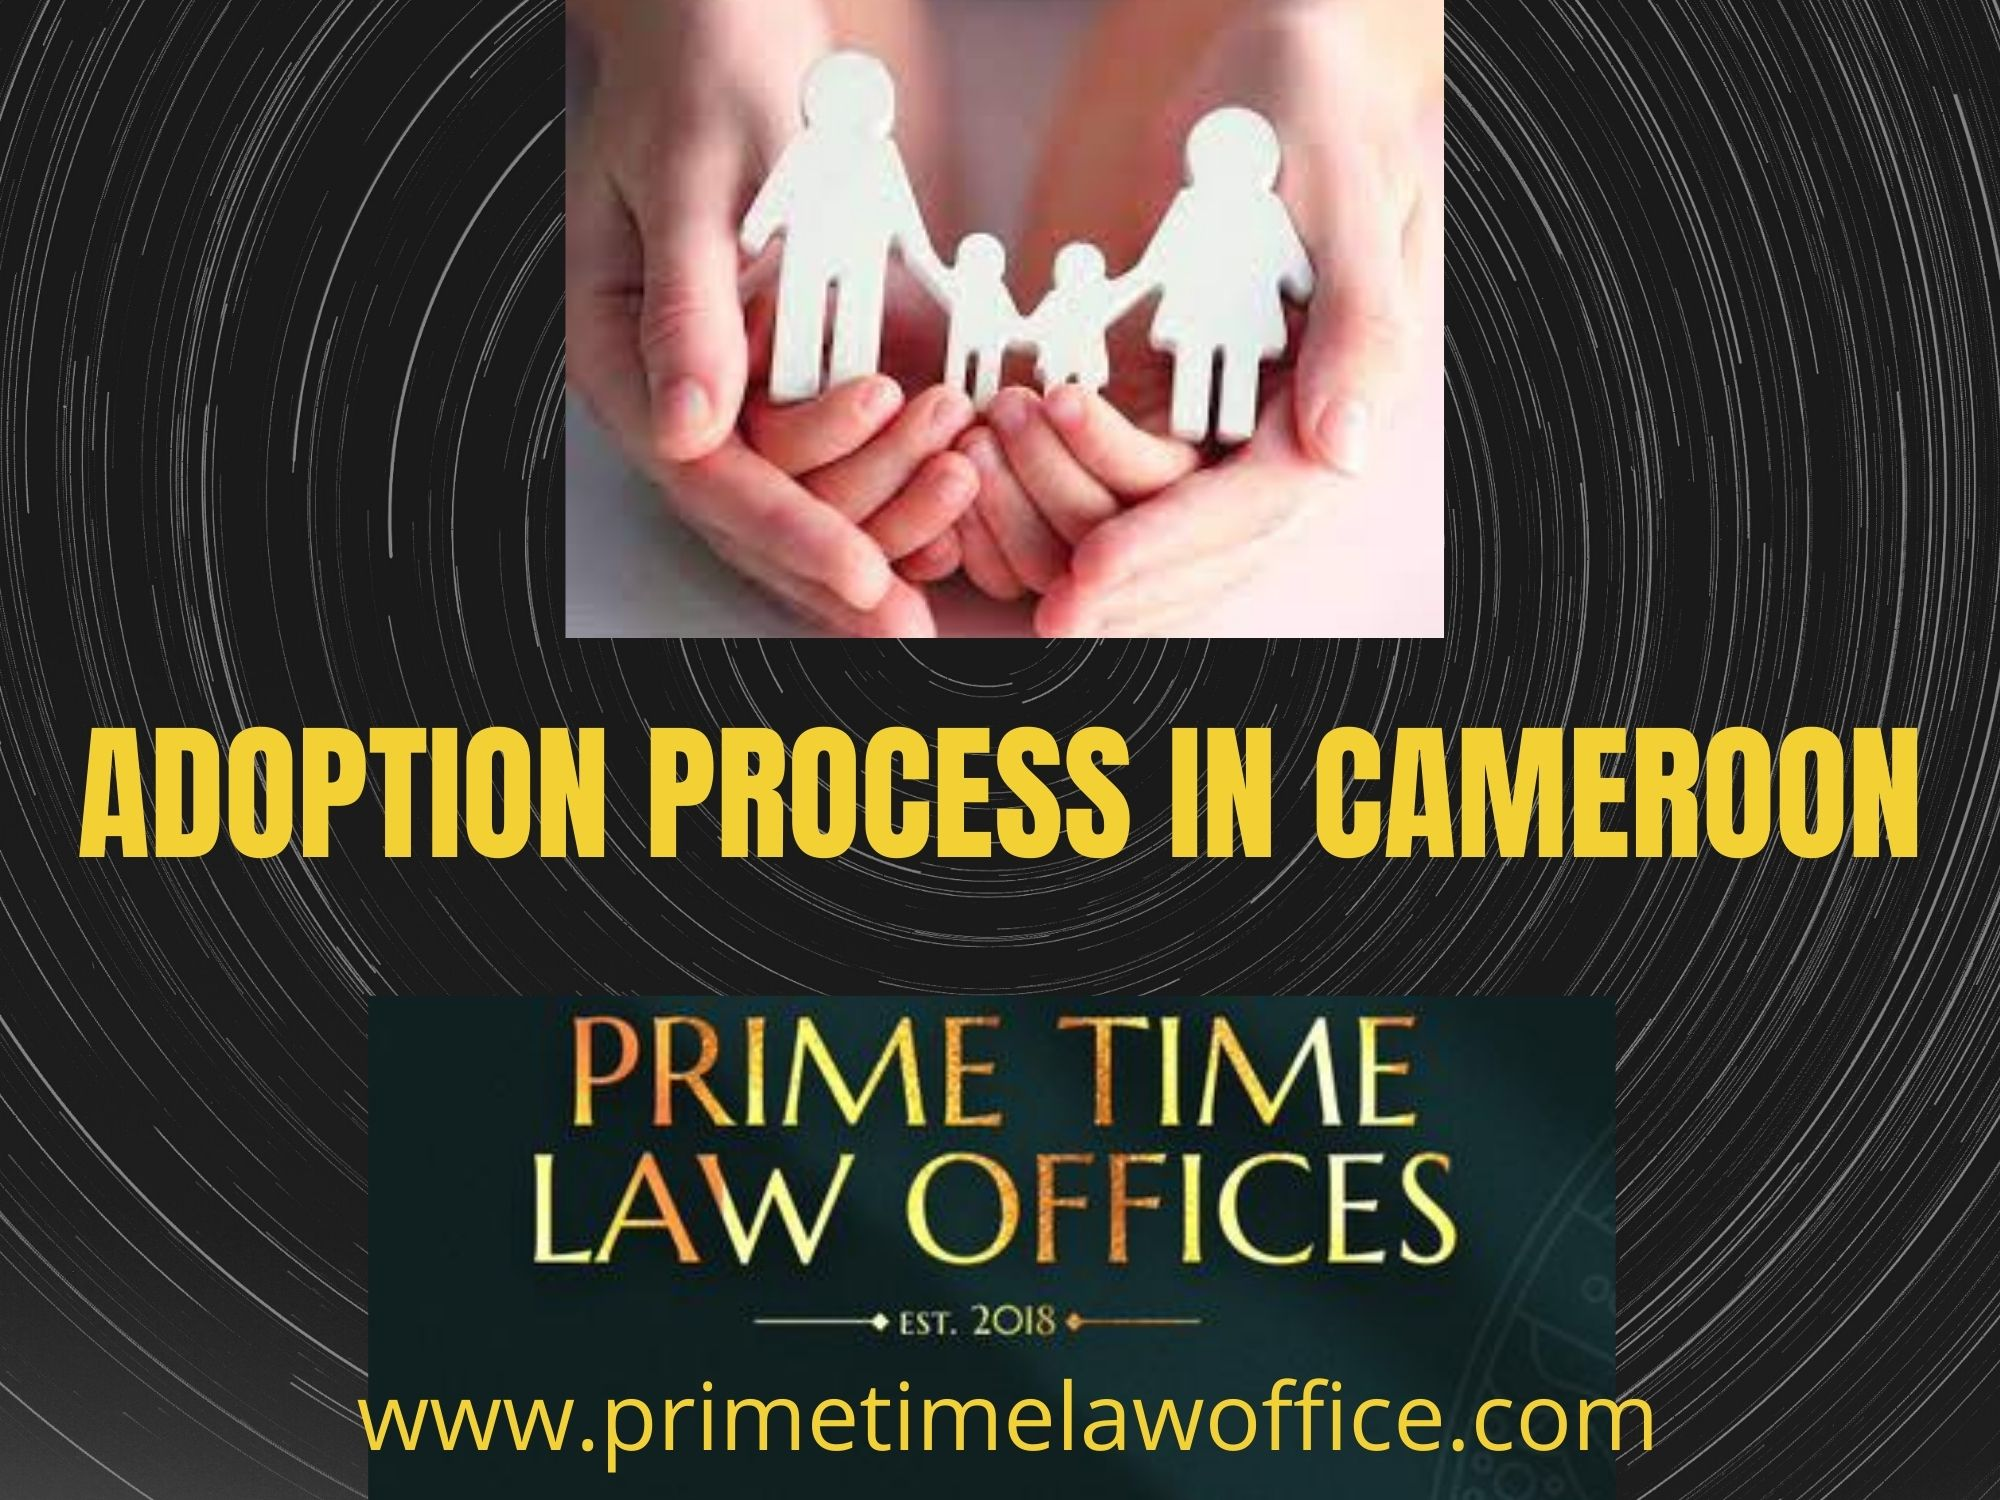 Adoption in Cameroon